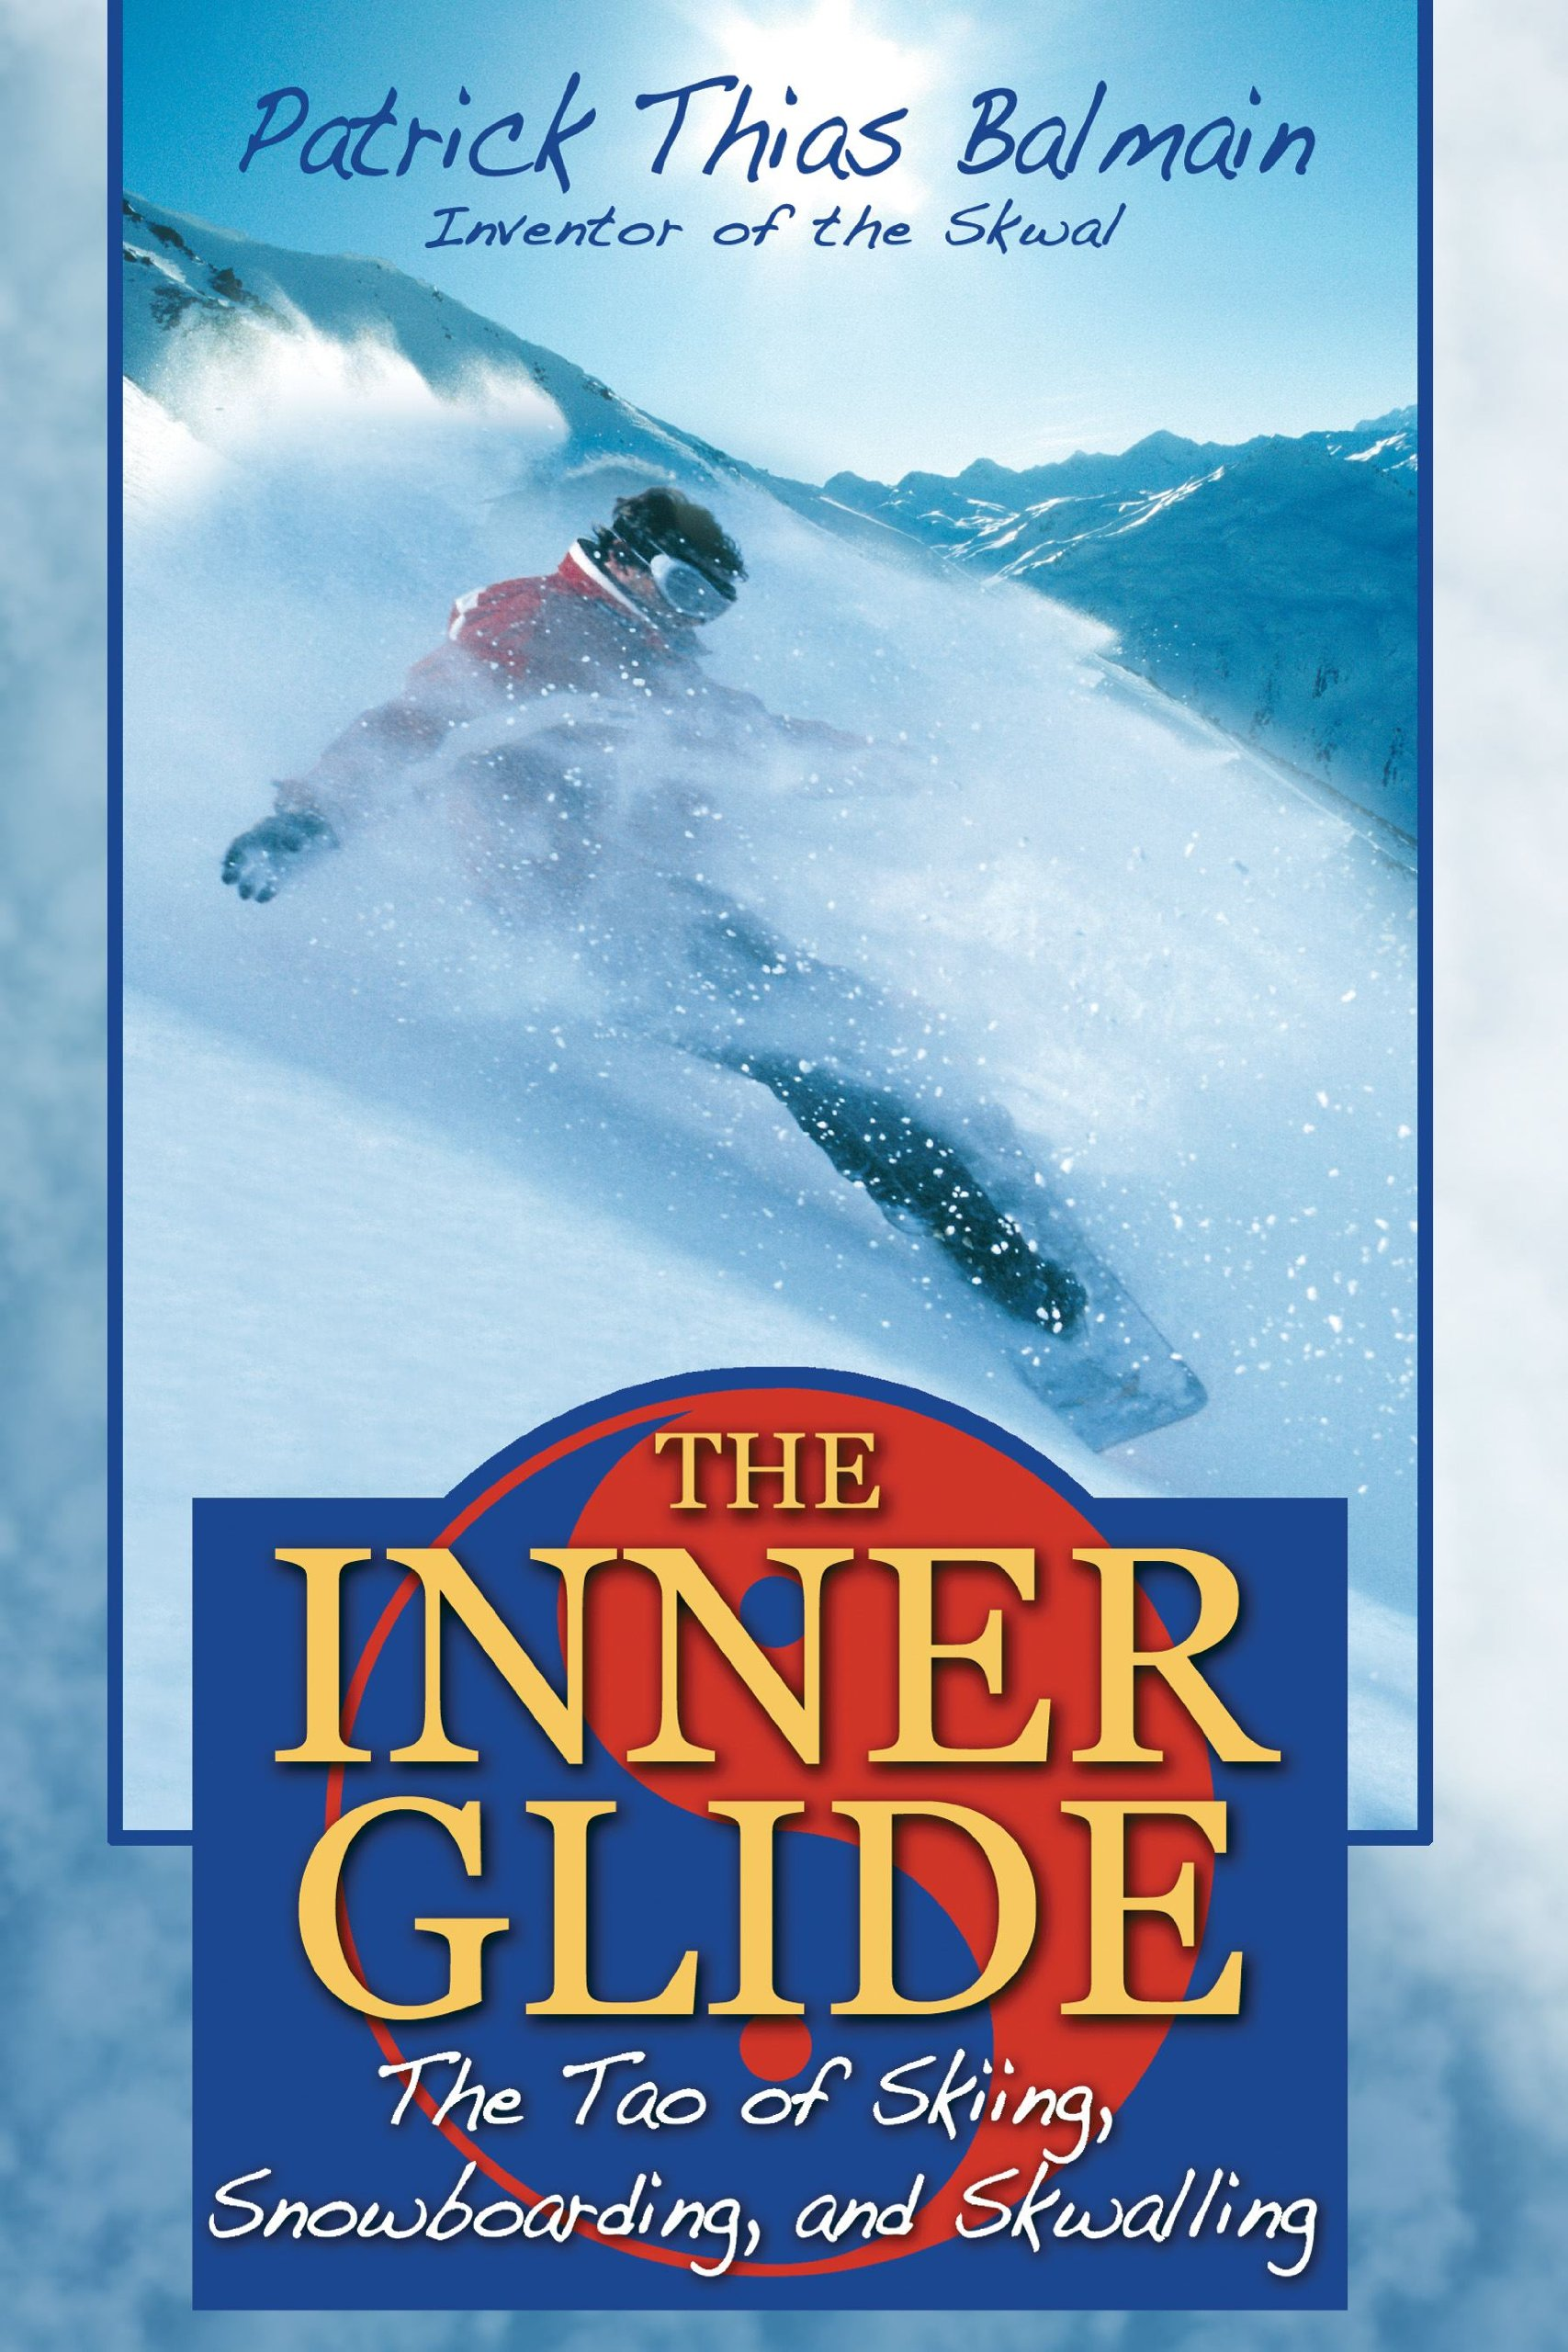 The Inner Glide: The Tao Of Skiing, Snowboarding, And Skwalling